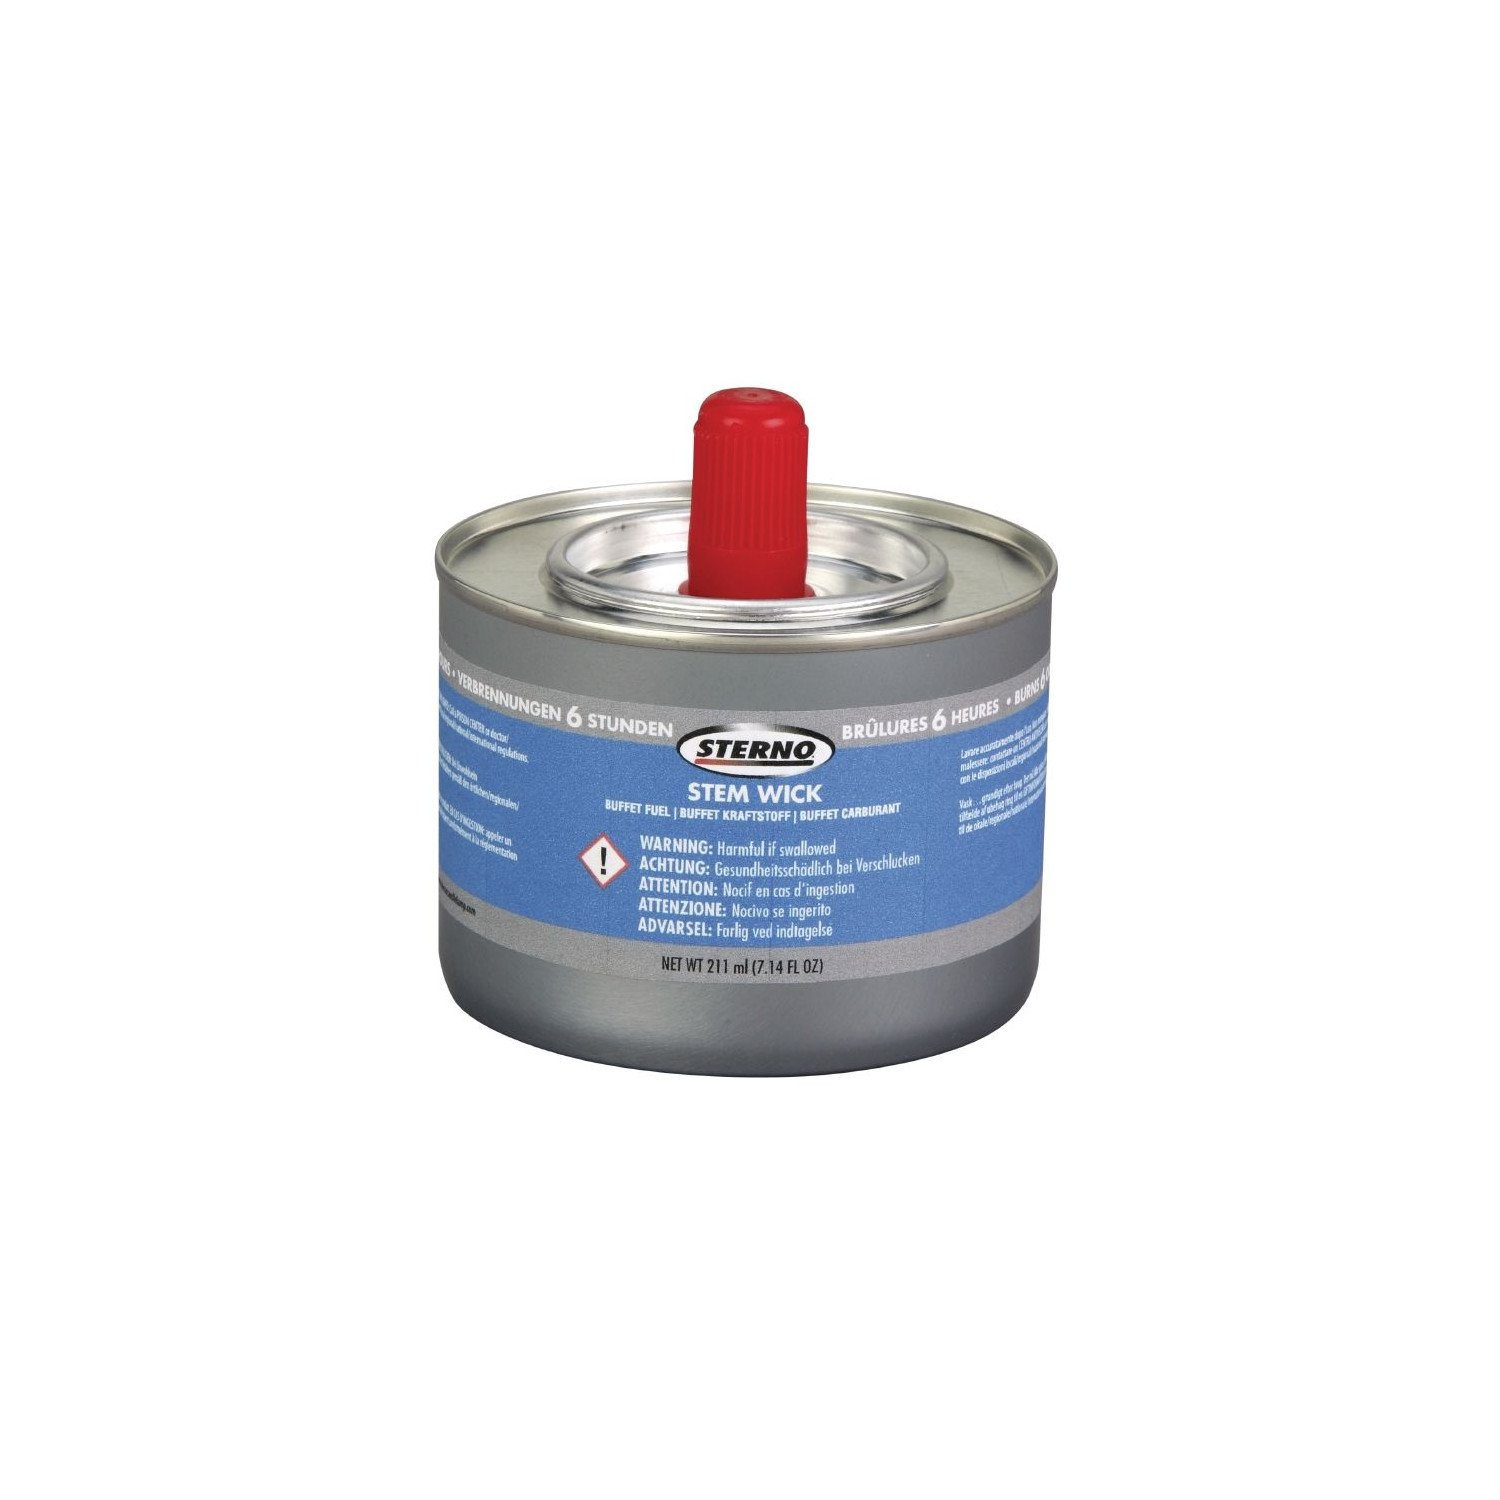 Combustible liquide Superwick 6 heures Sterno x36 STERNO Chafing Dish